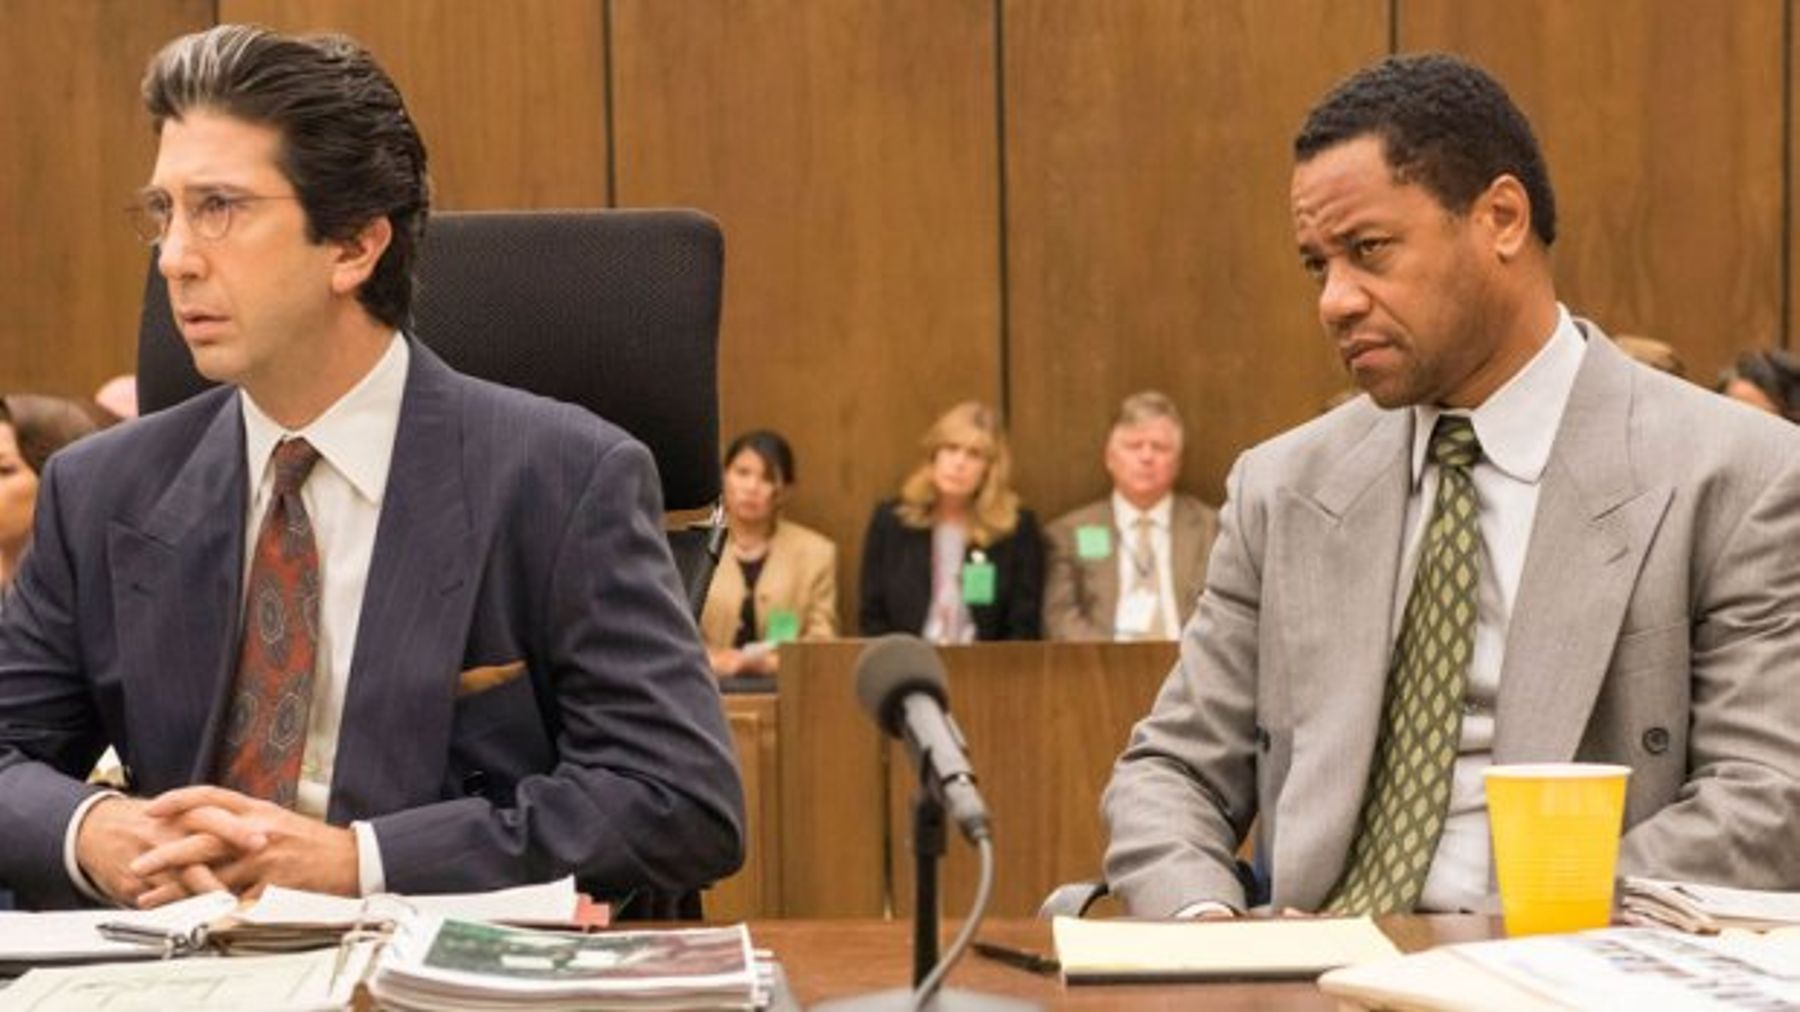 How Accurate Is The People Vs OJ Simpson: American Crime